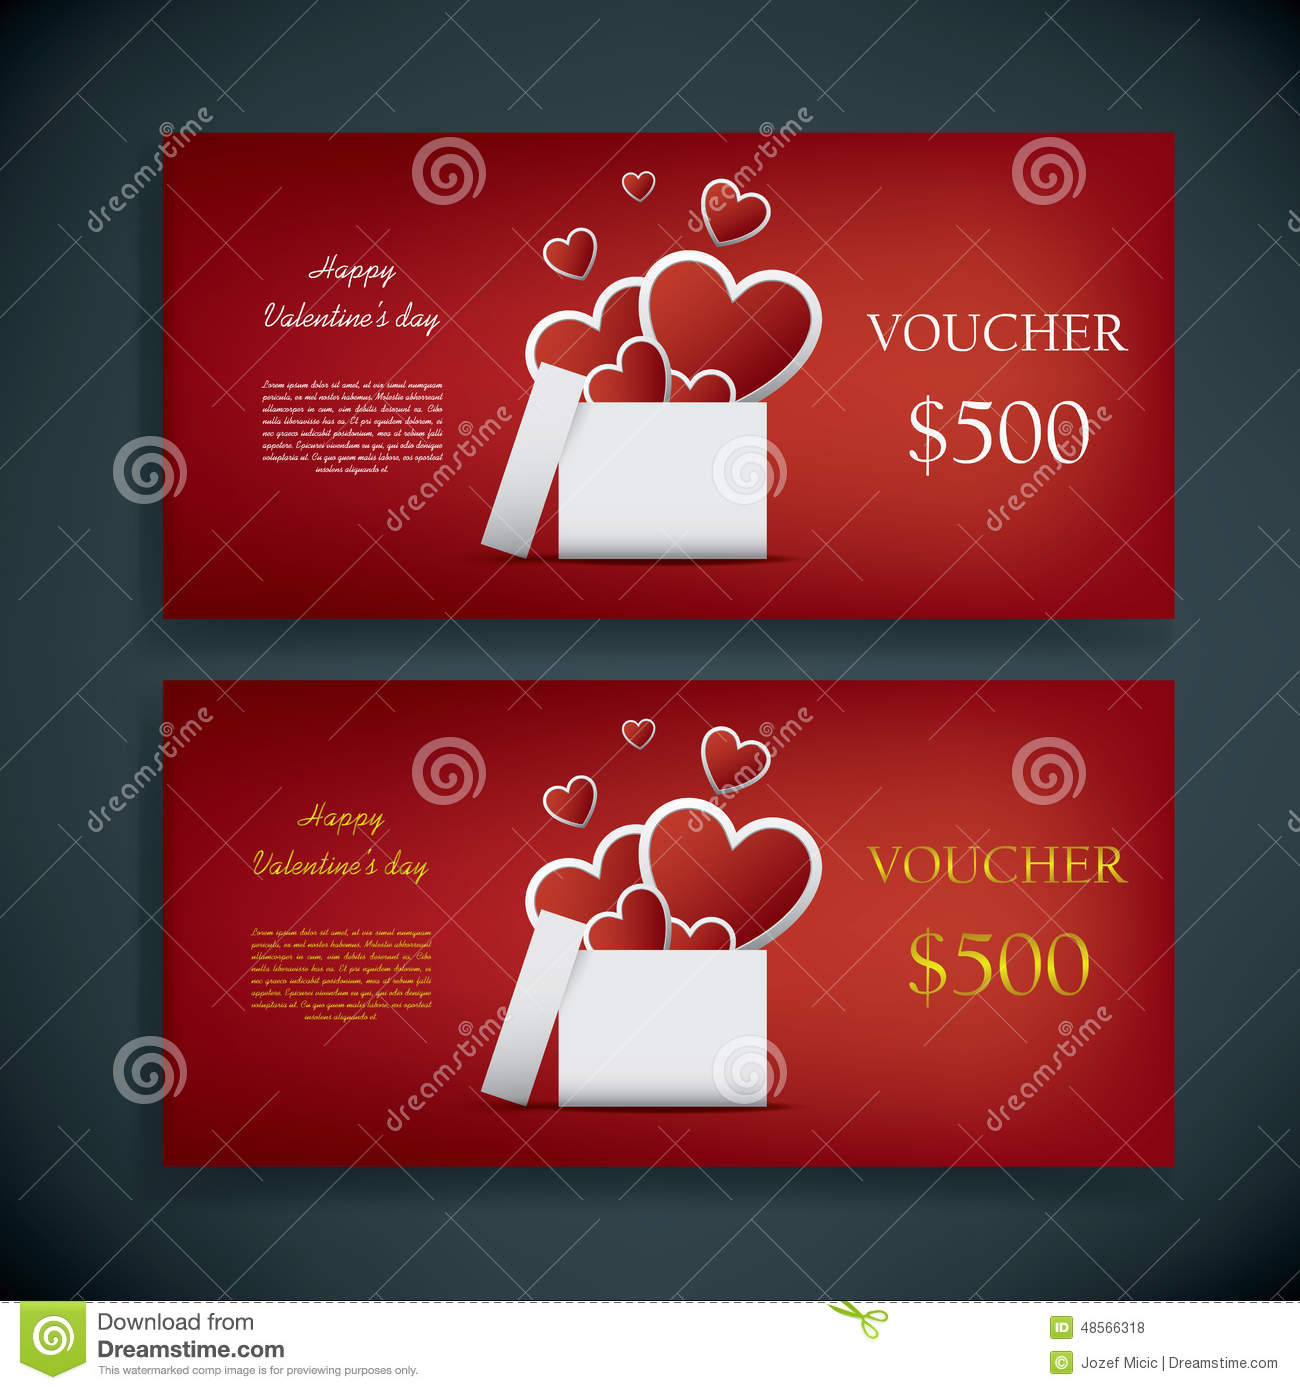 Valentine S Day Gift Card Voucher Template With Stock Vector